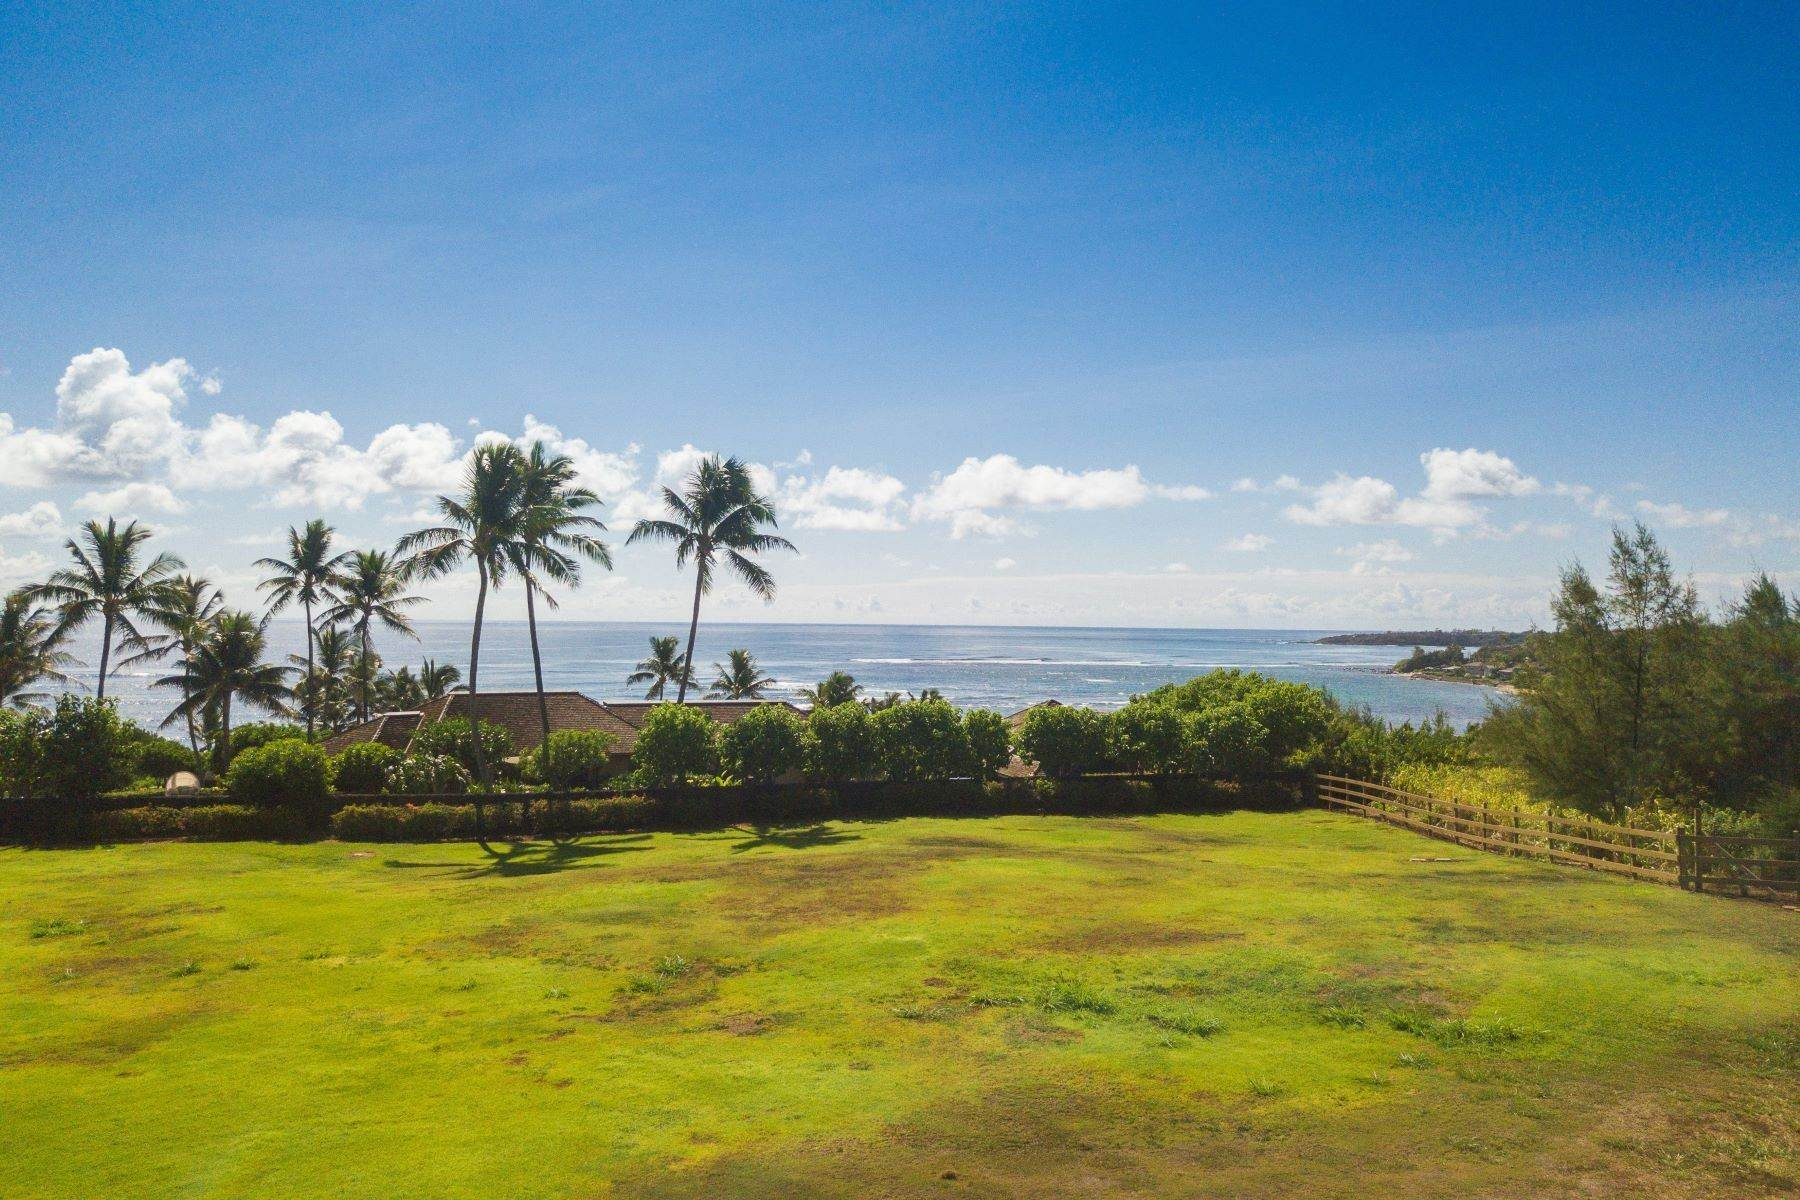 Land for Sale at 5286--7E Kalalea View Drive #7E ANAHOLA, HI 96703 5286--7E Kalalea View Drive #7E Anahola, Hawaii 96703 United States